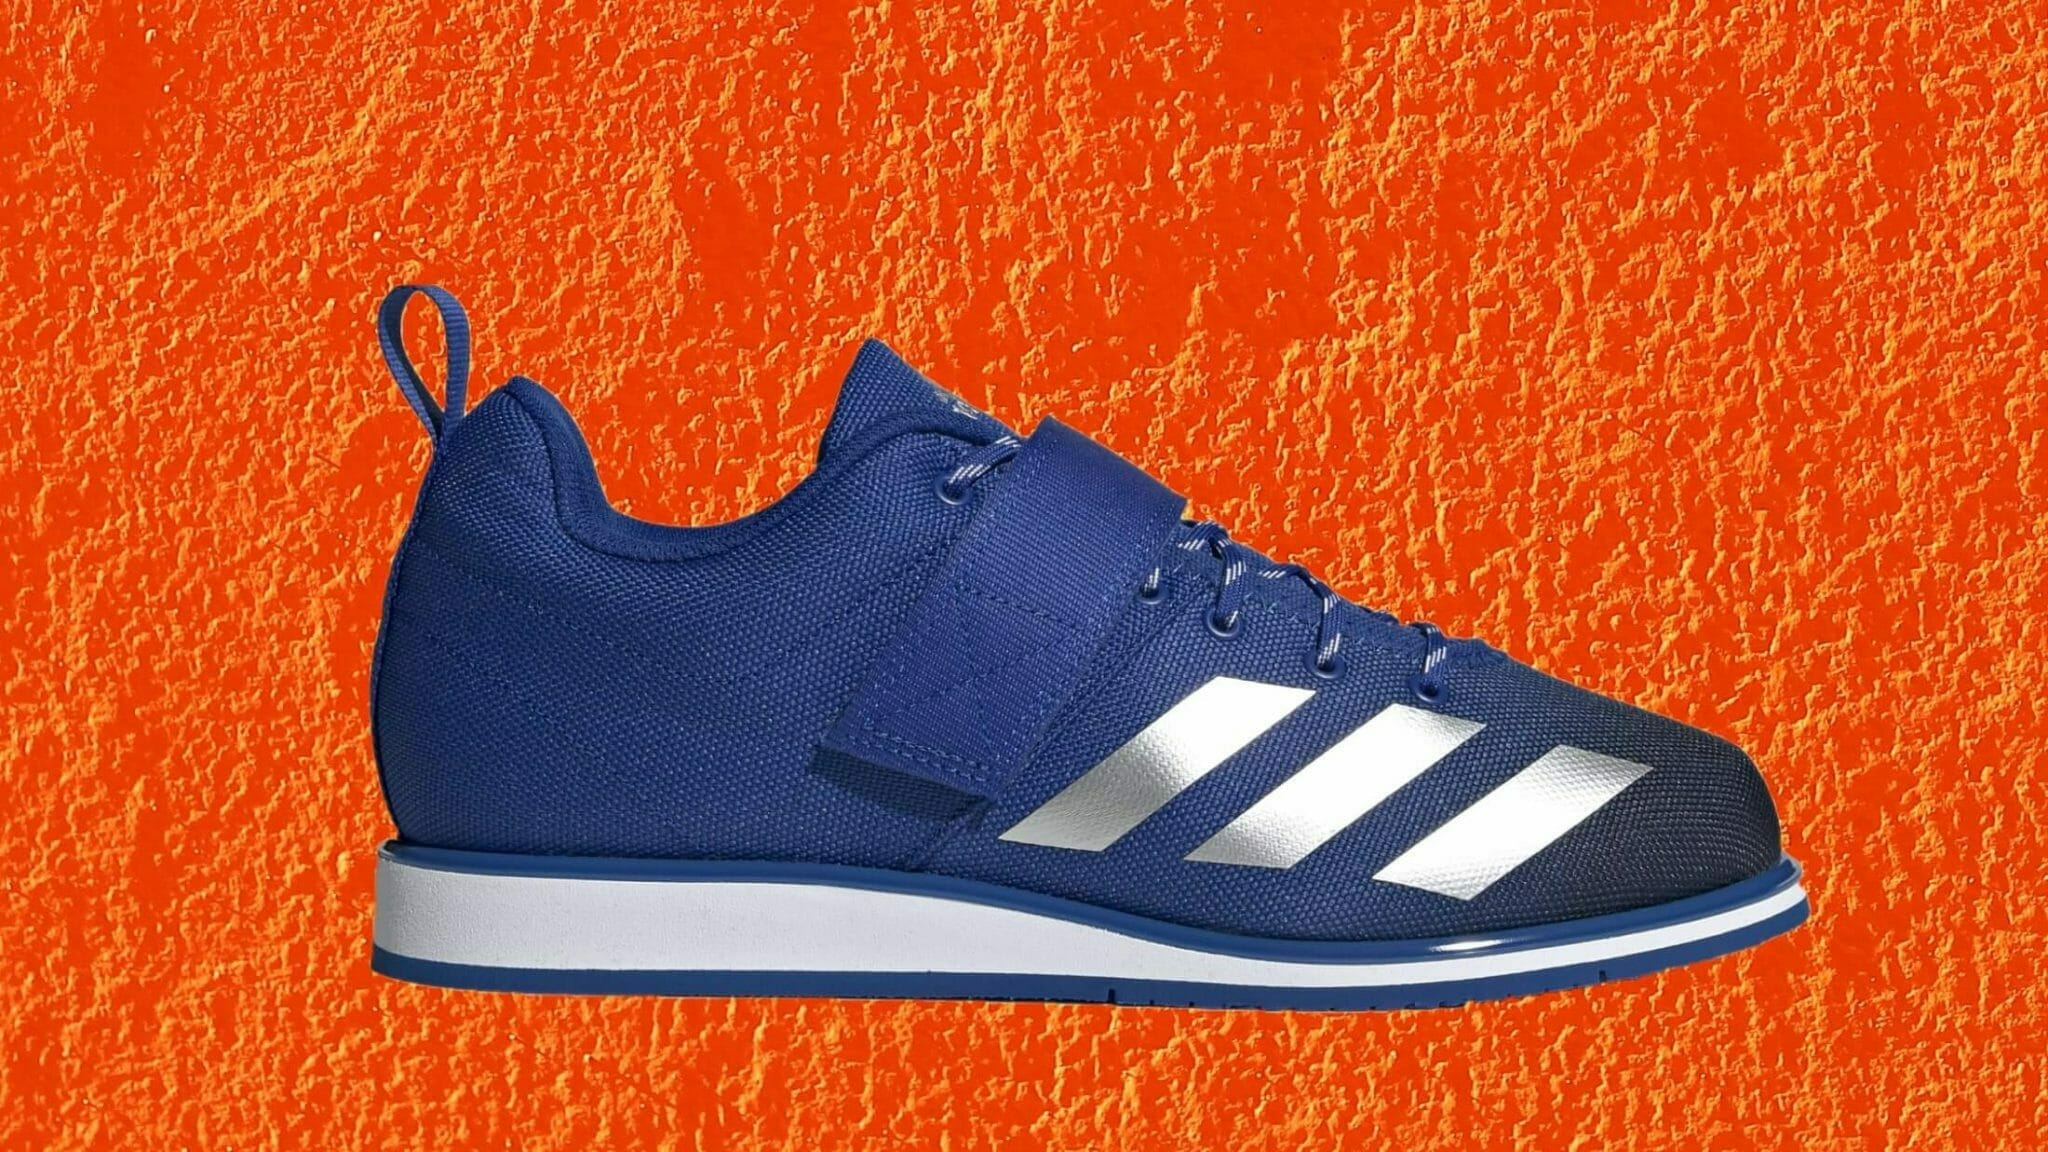 adidas Powerlift blue and silver metallic on orange background. Formerly known as the Powerlift 4.